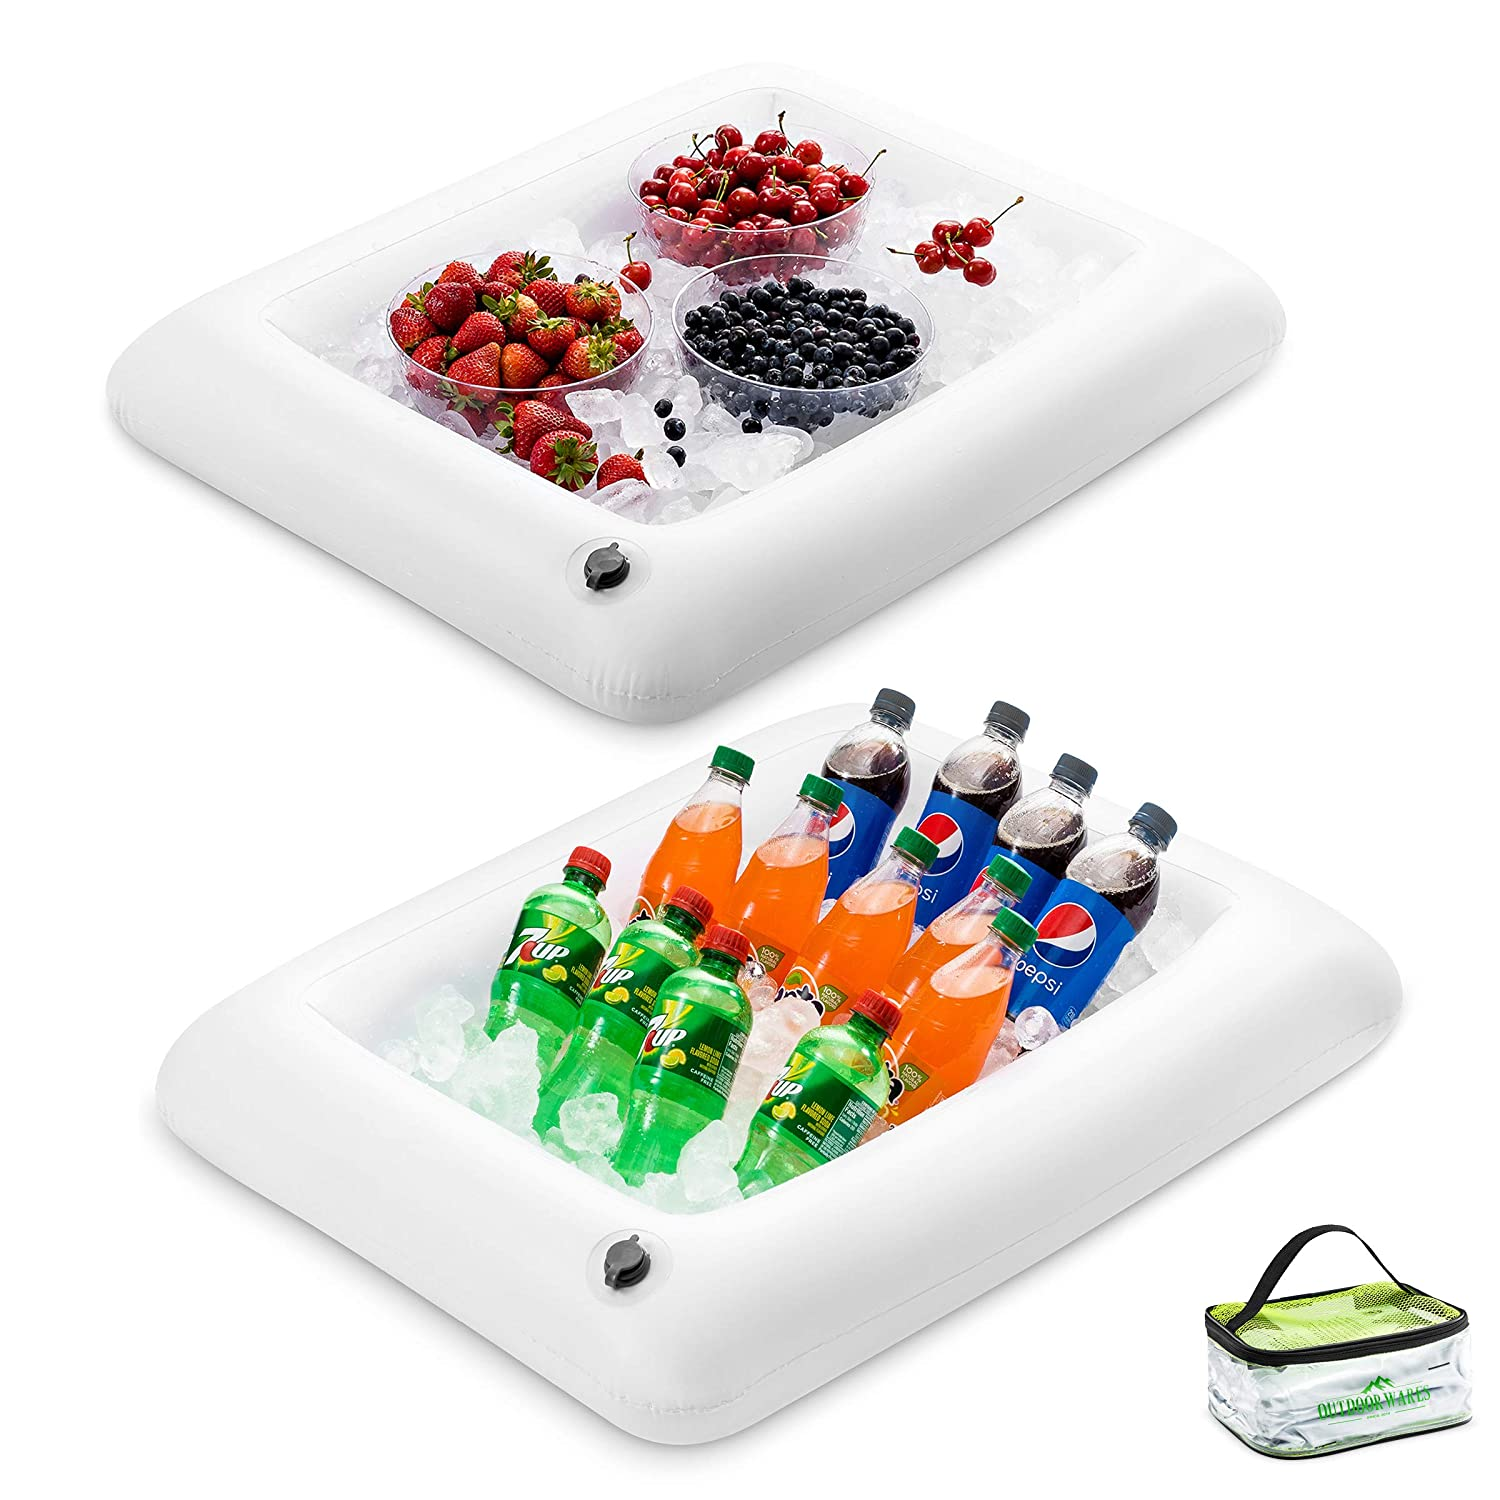 "Premium Inflatable Salad Bar Tray With Drain New Innovative Valve for EASY Inflation - Deflation By Outdoorwares Food & Drink Holder For Picnics, Barbeques & Parties – 28"" x 22"" x 4"" - Pack Of 2"